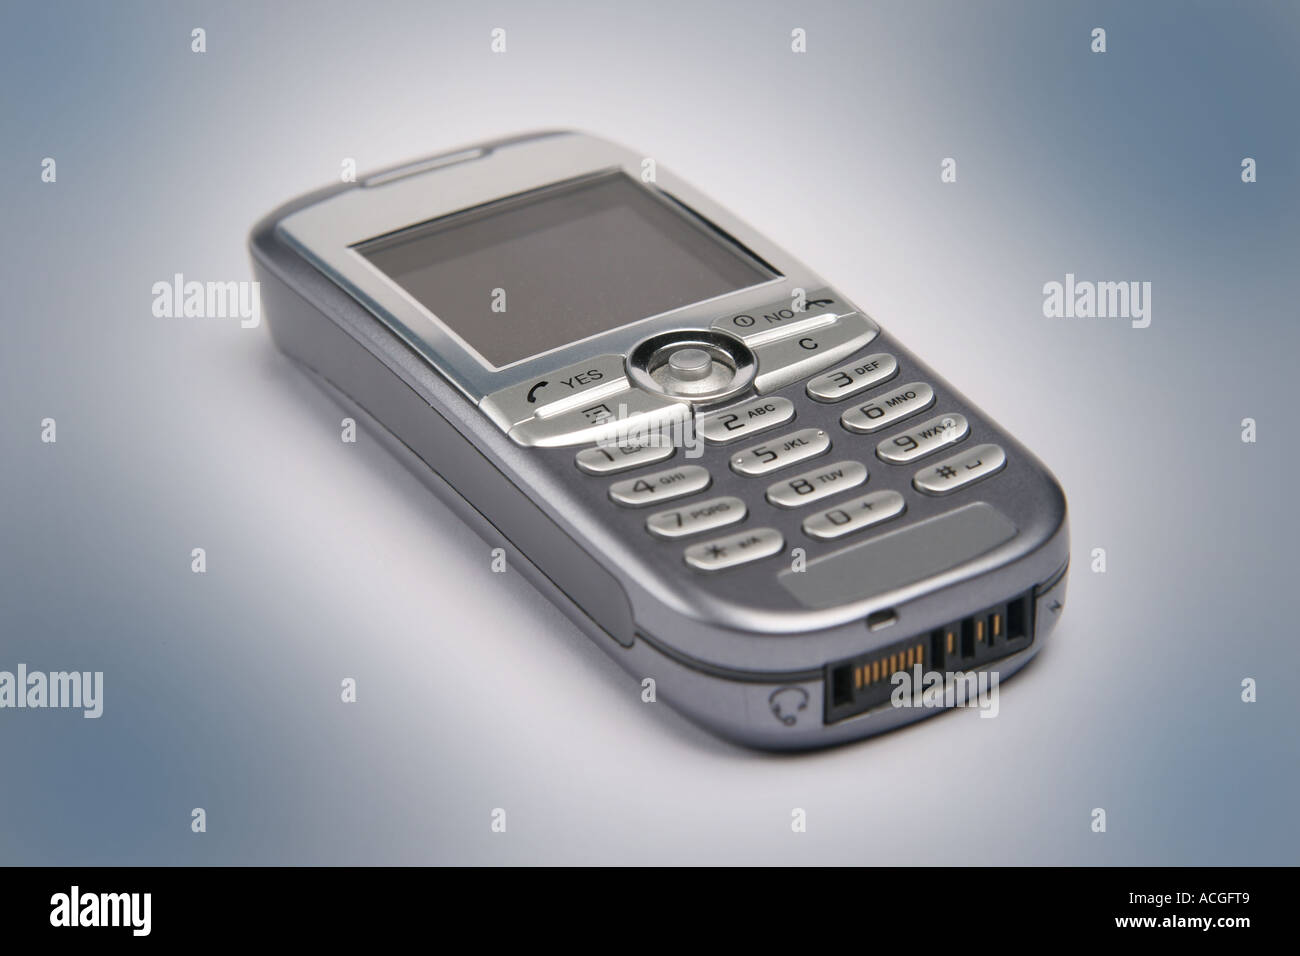 Mobile phone - Stock Image